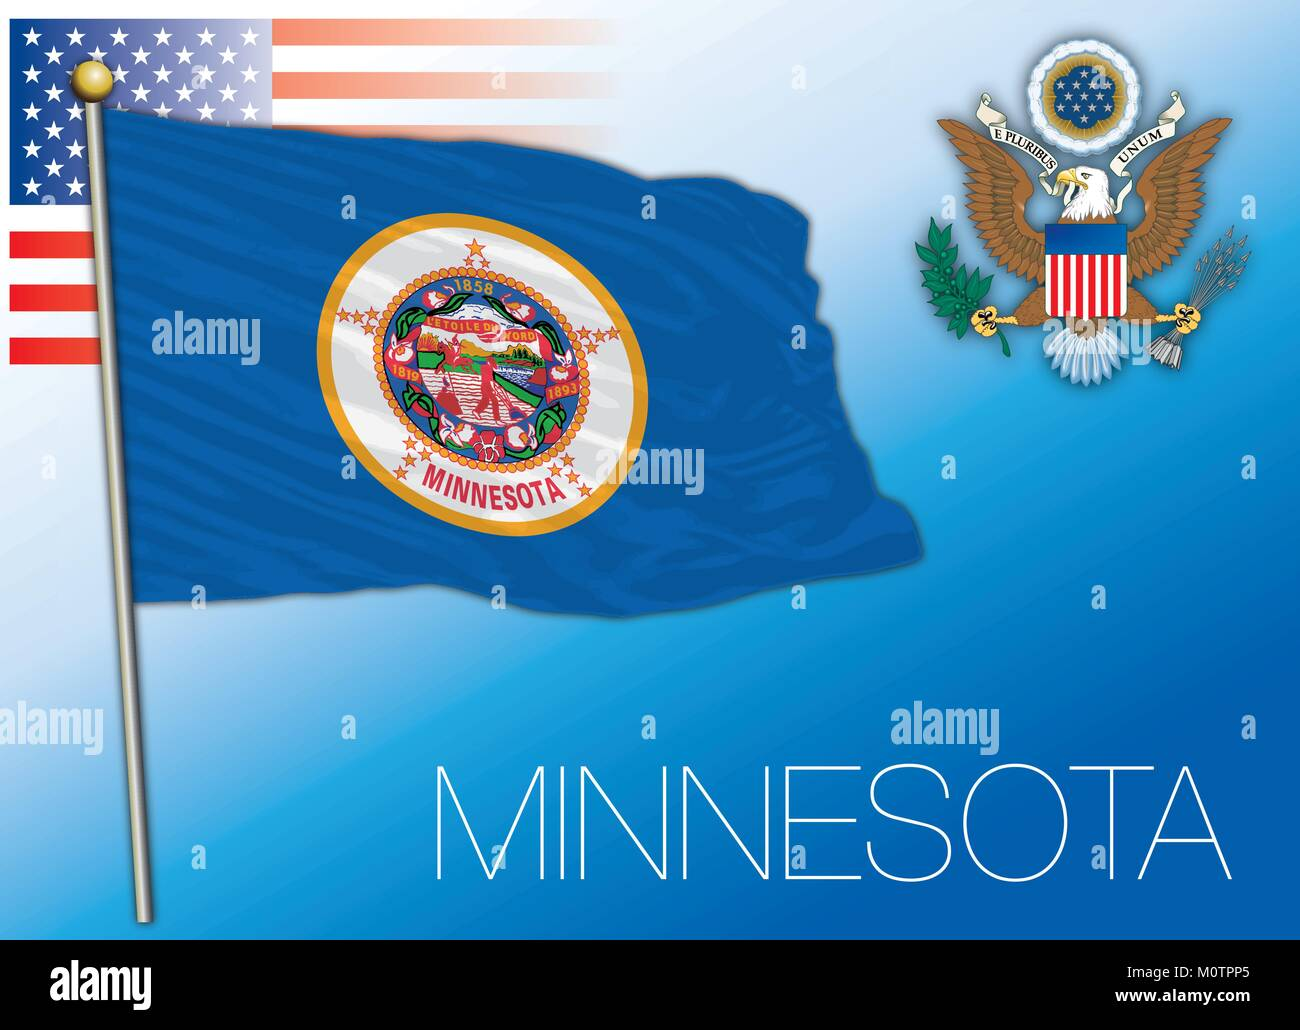 Minnesota federal state flag, United States - Stock Vector